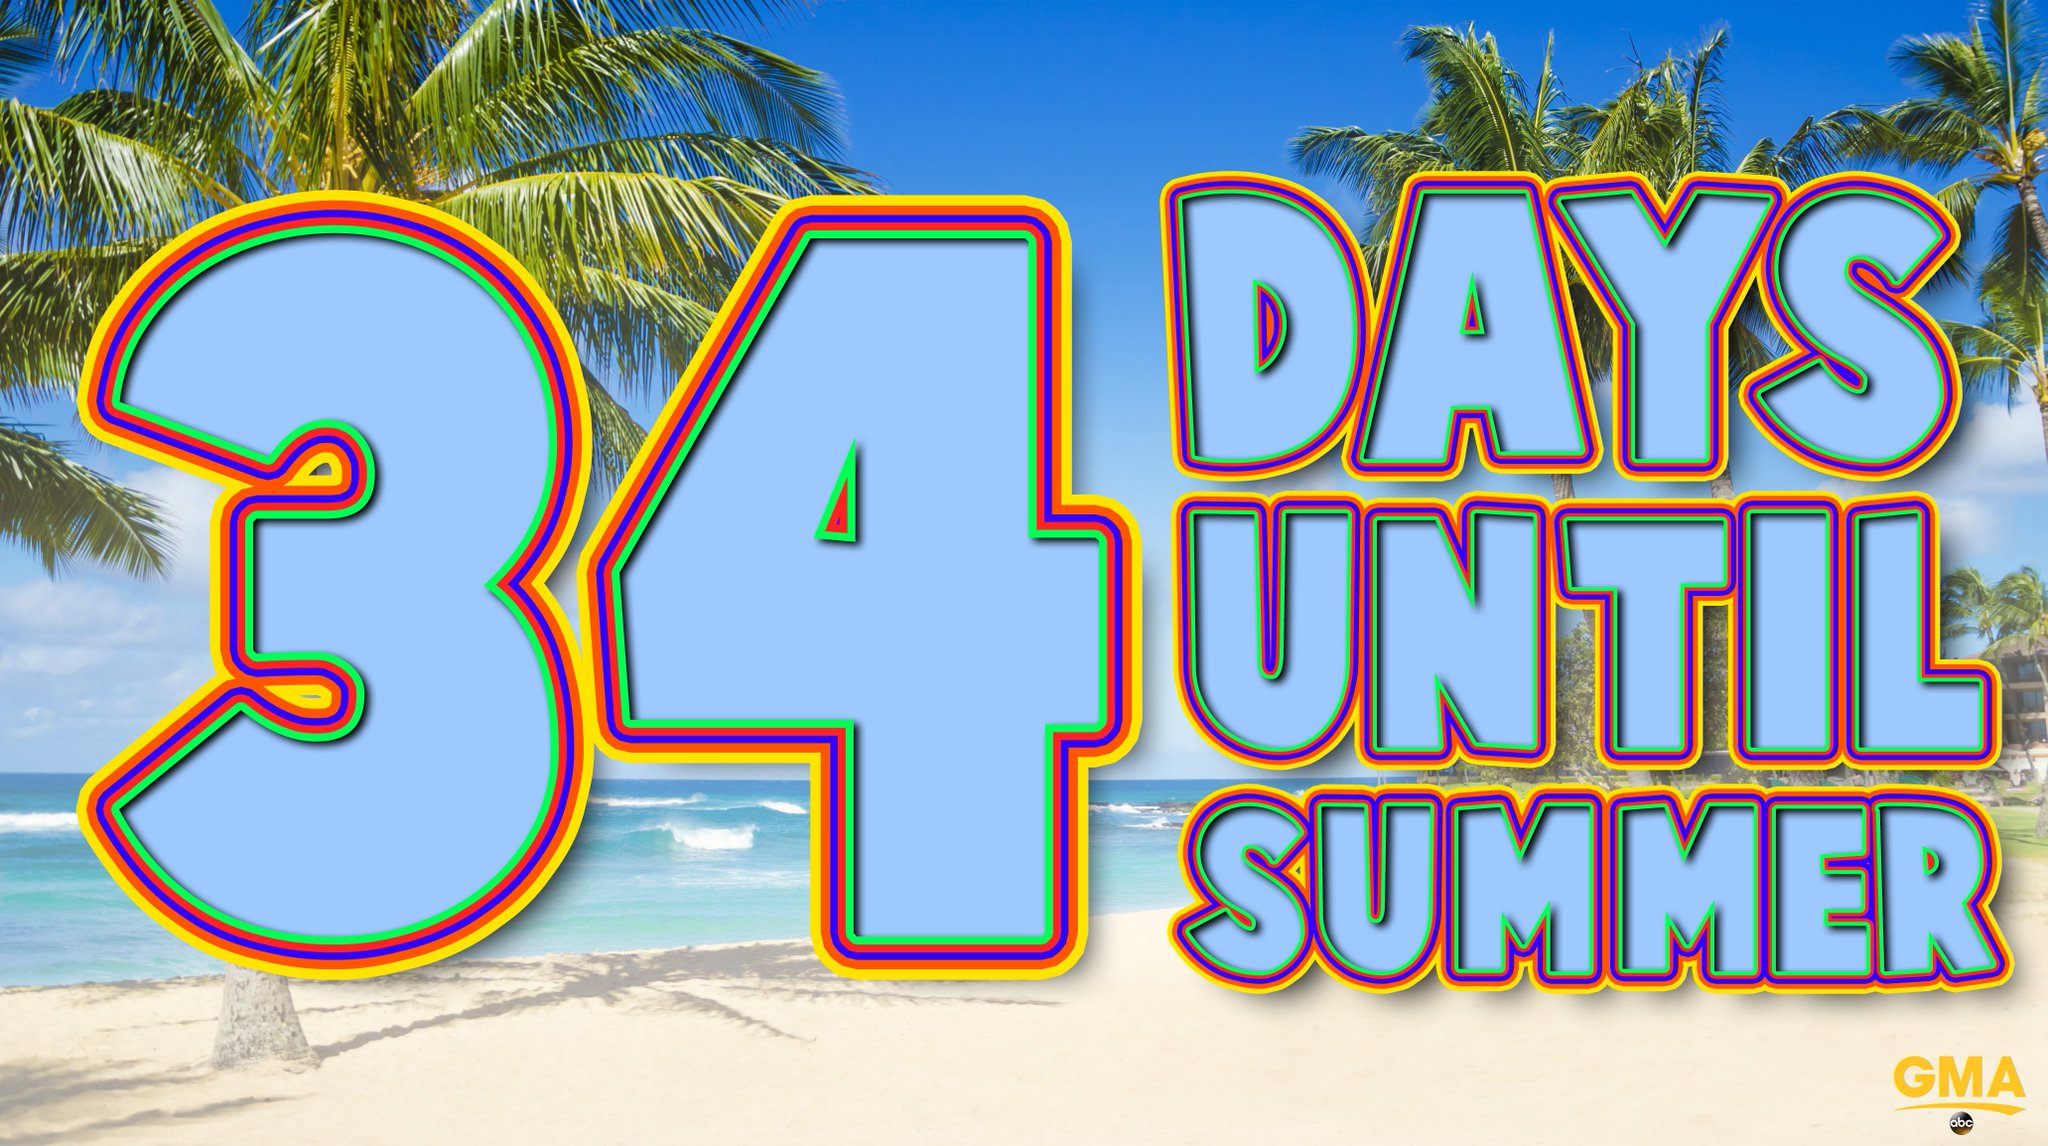 34 days until SUMMER! �� ☀️ https://t.co/CEUsiy9DYt